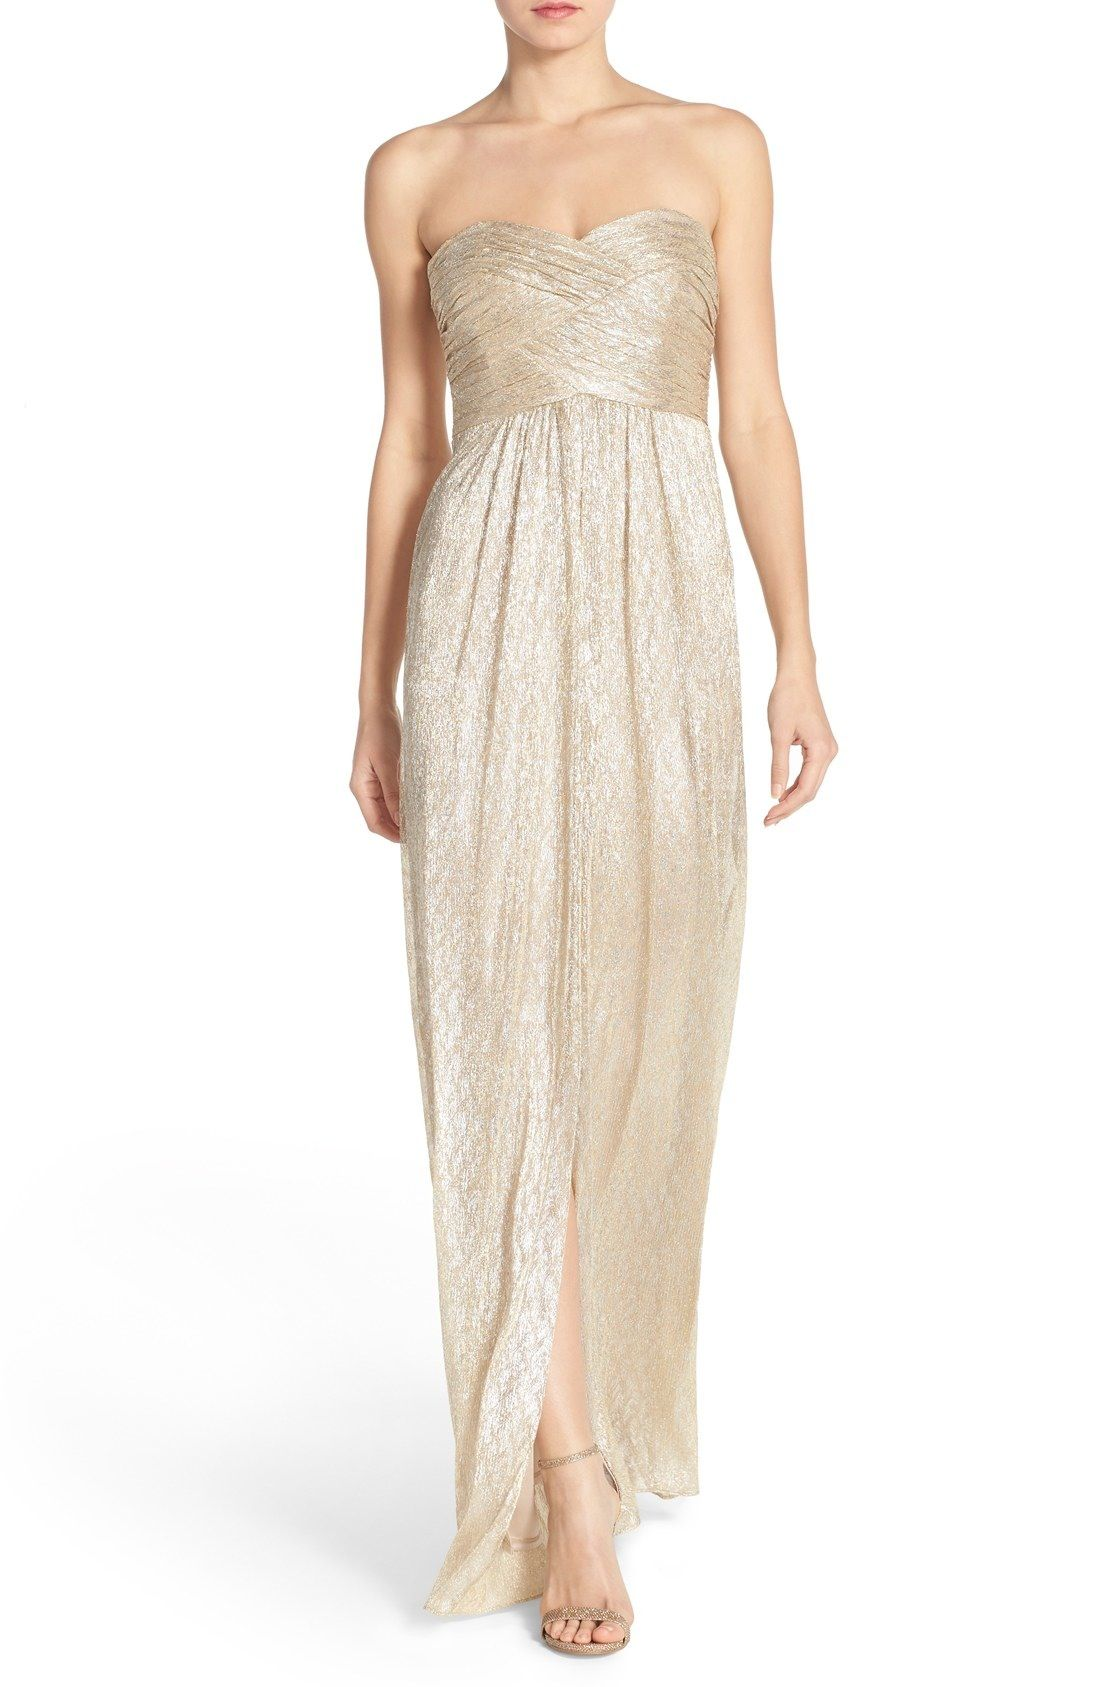 Laundry by Shelli Segal Shirred Metallic Strapless Gown available at ...